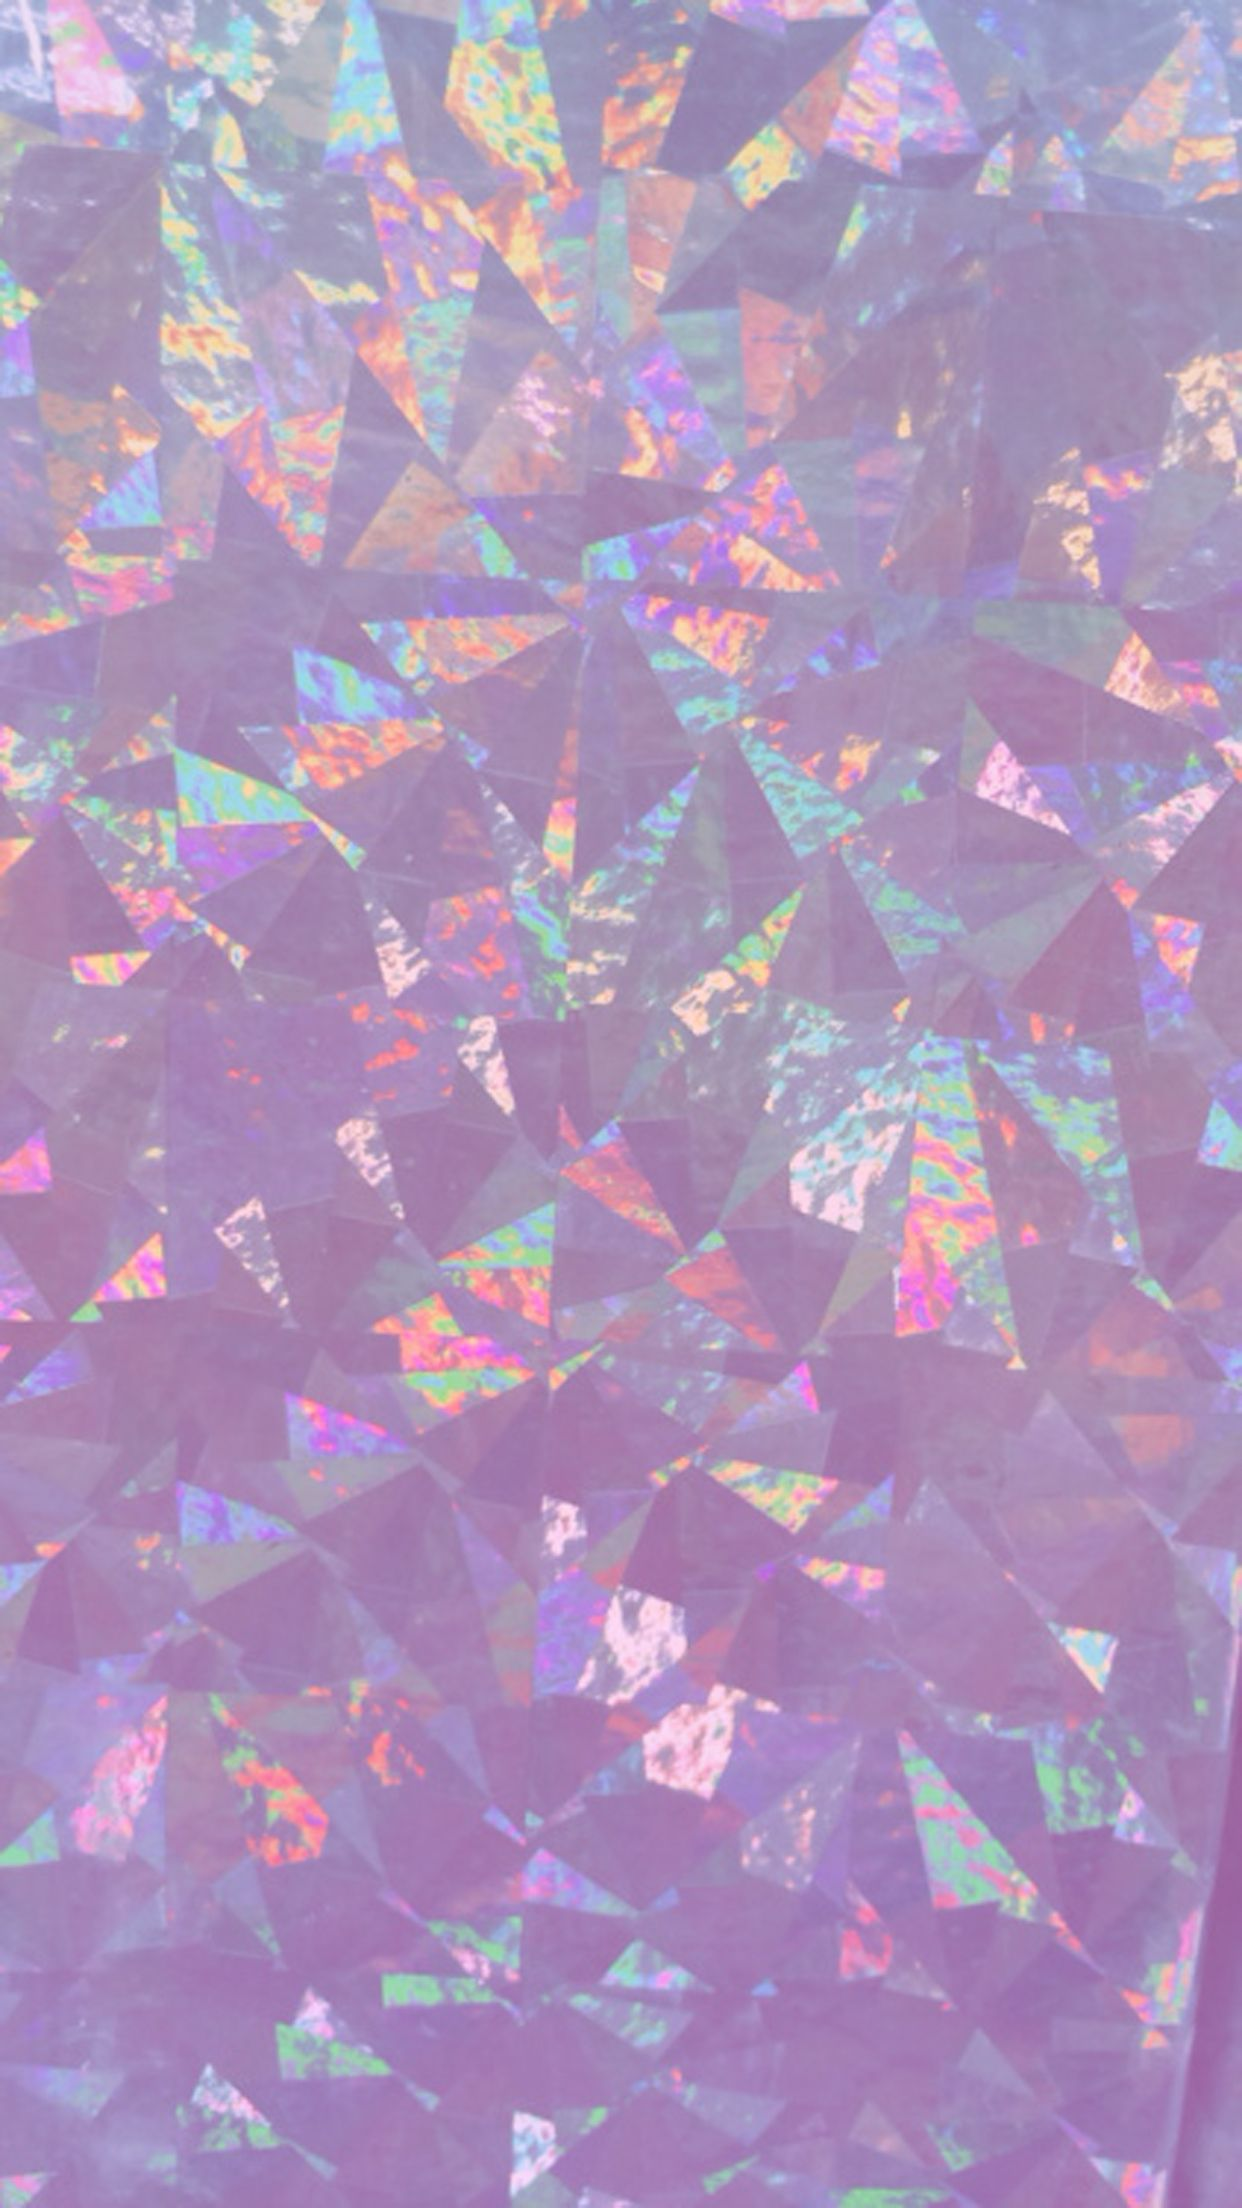 Iridescent Holographic Wallpaper, iPhone, Android, HD